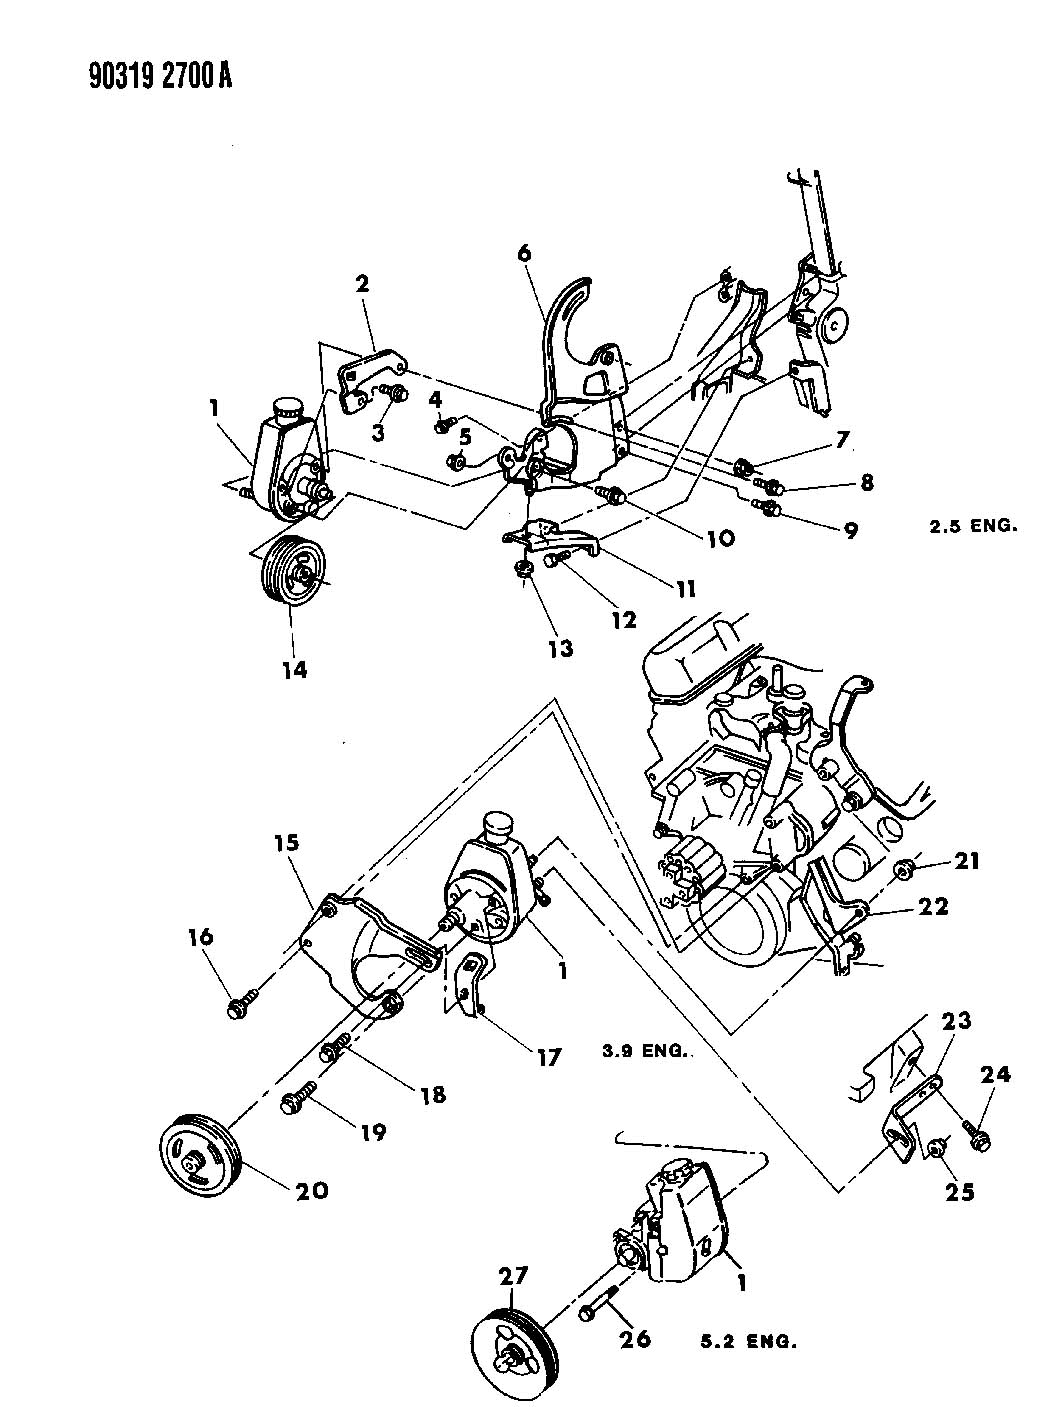 1995 Nissan 240sx Steering Diagram Quick Start Guide Of Wiring 1993 Dodge Dakota Fuel System Pump Free Engine Image For User Manual Download 1997